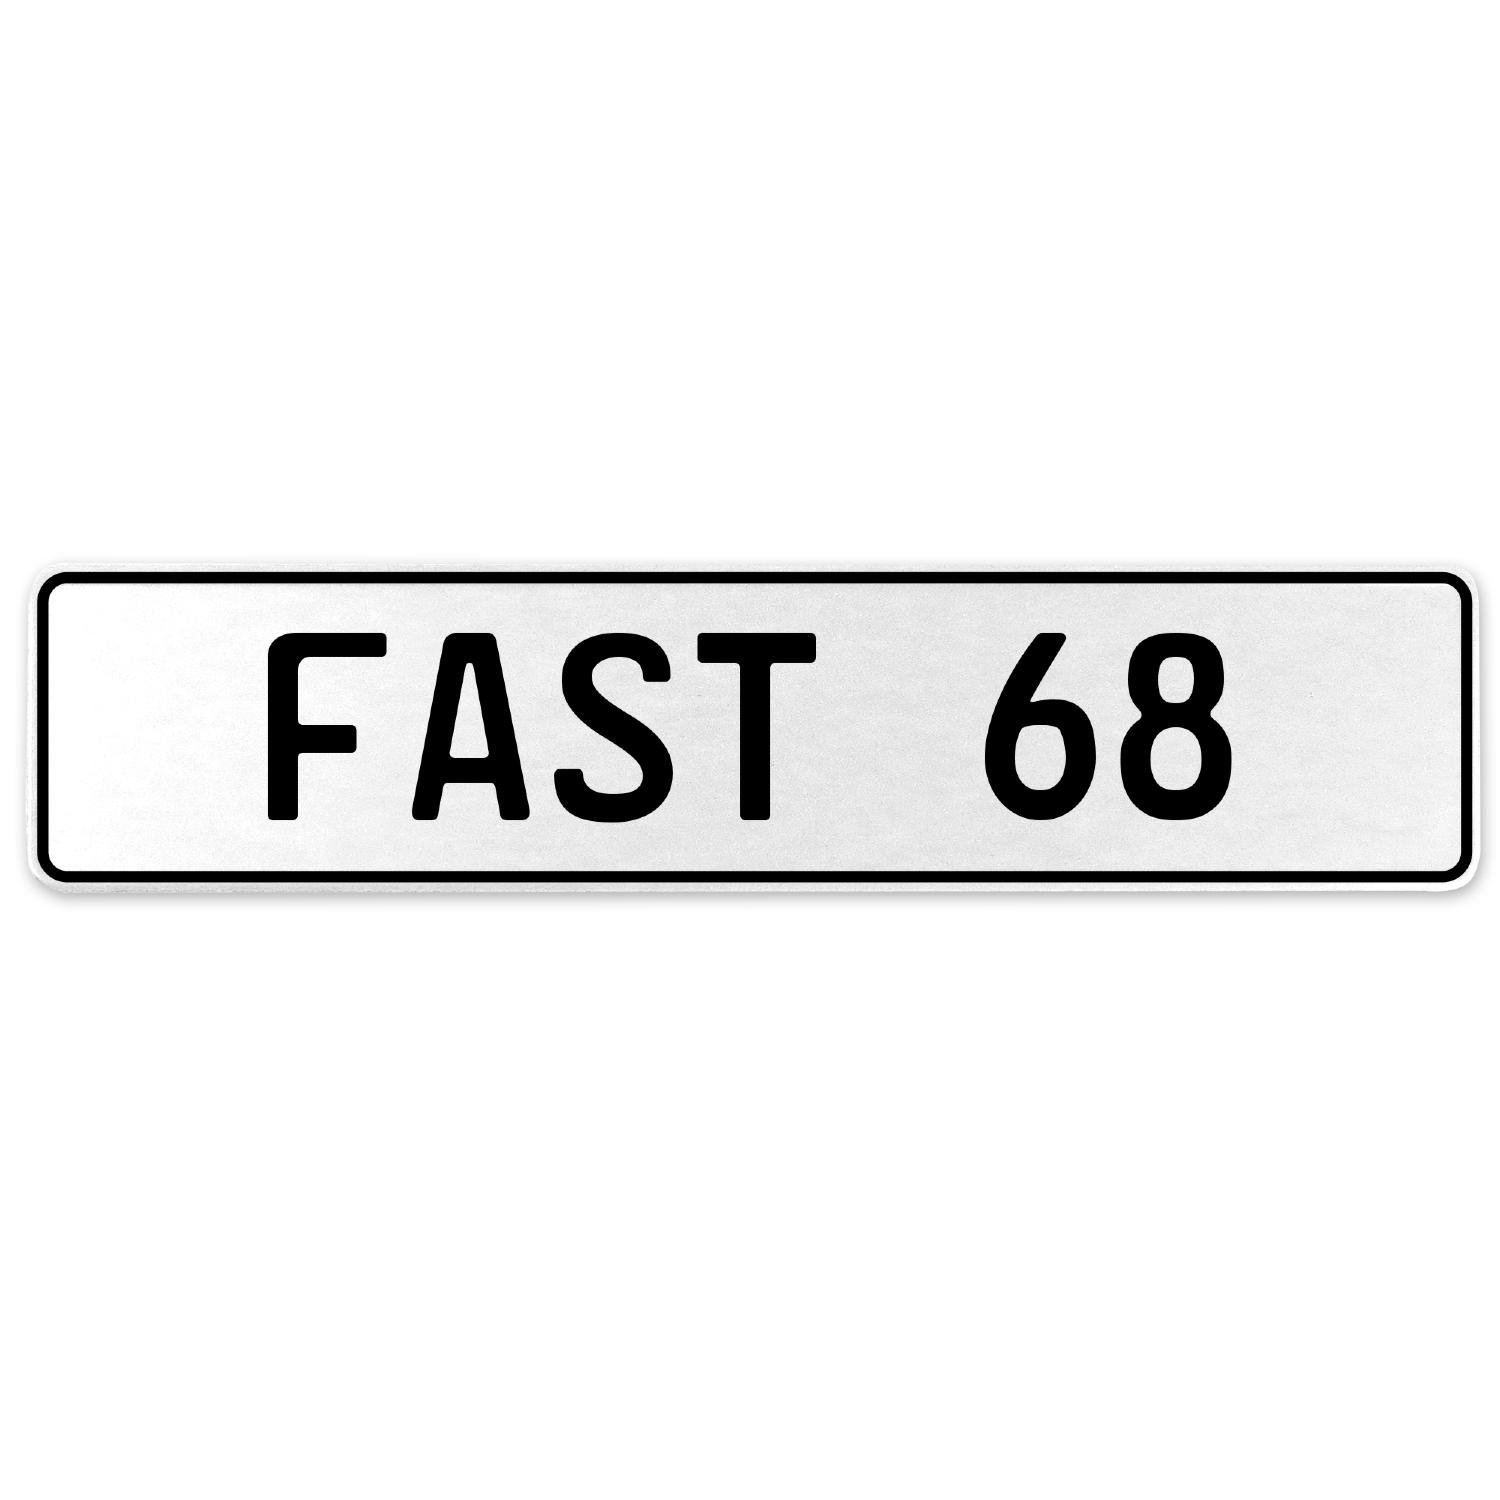 Vintage Parts 557338 Fast 68 White Stamped Aluminum European License Plate